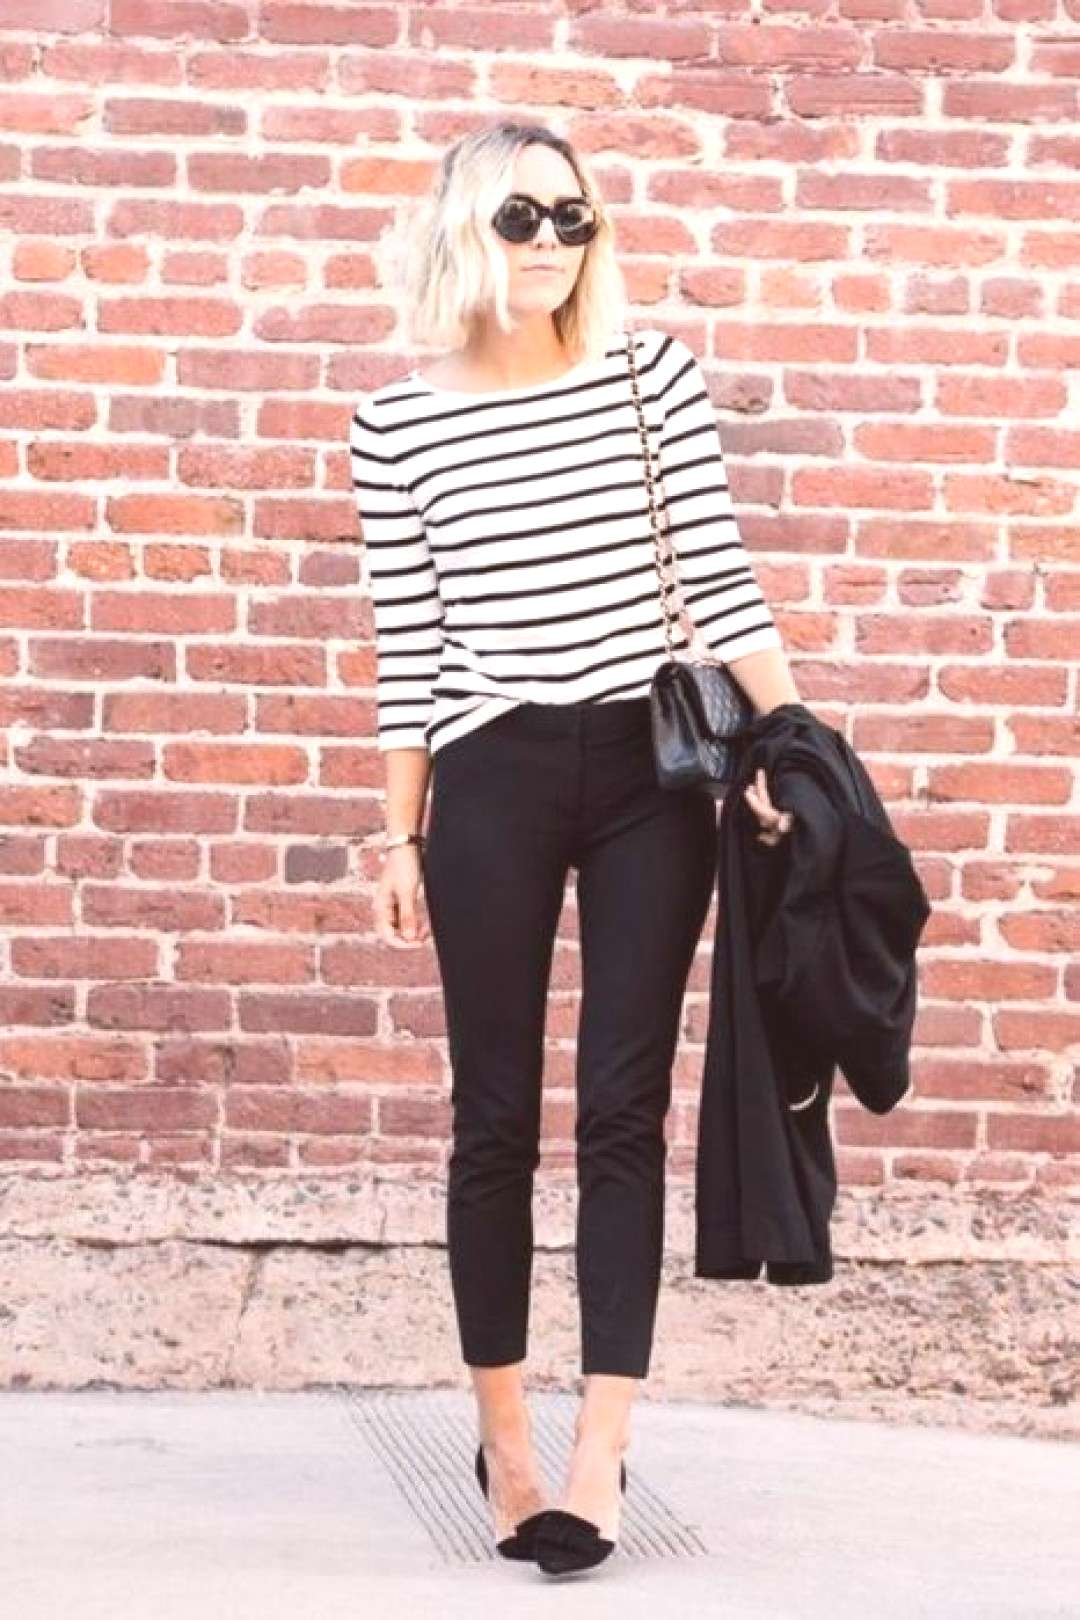 15 Business Casual Outfit Ideas For Work -  15 Business Casual Outfit Ideas For Work  -